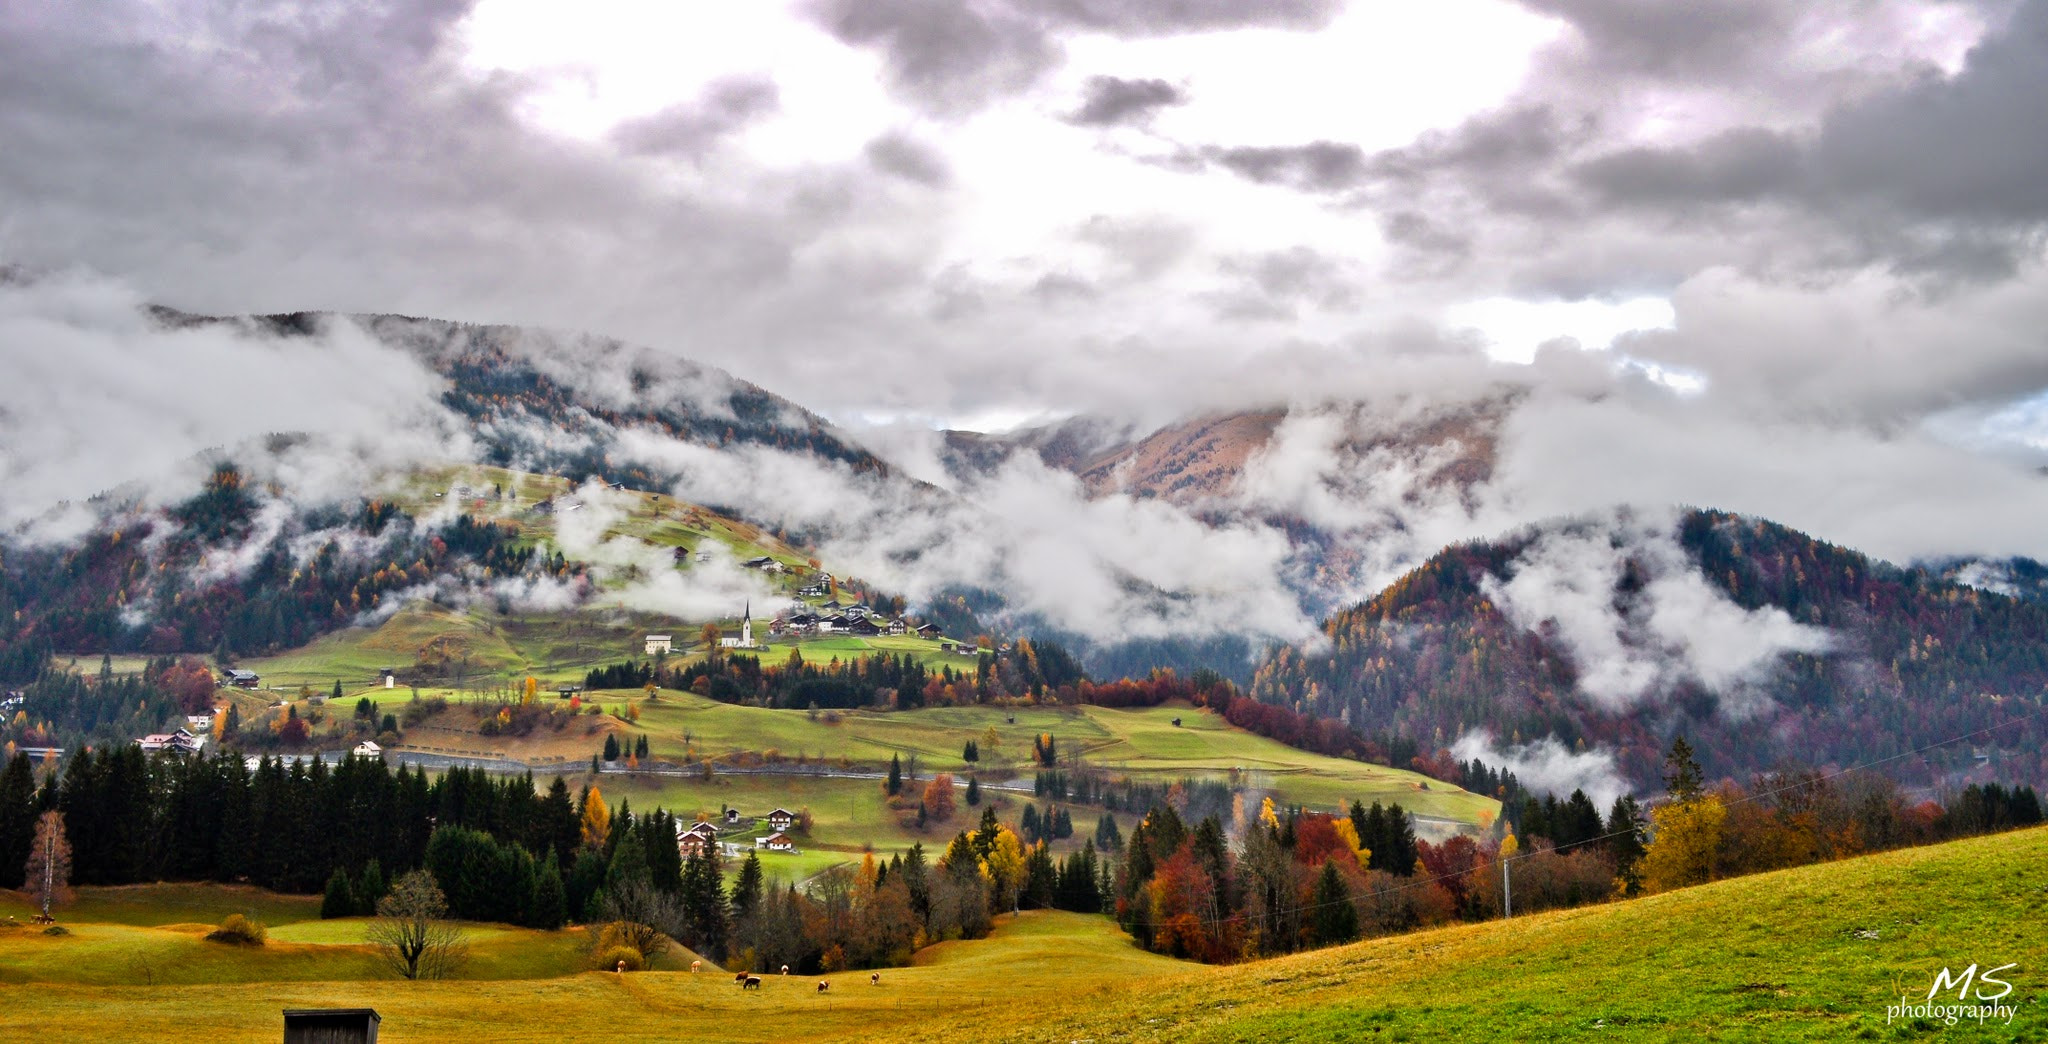 Photograph Cloudy nature by Michael Stabentheiner on 500px